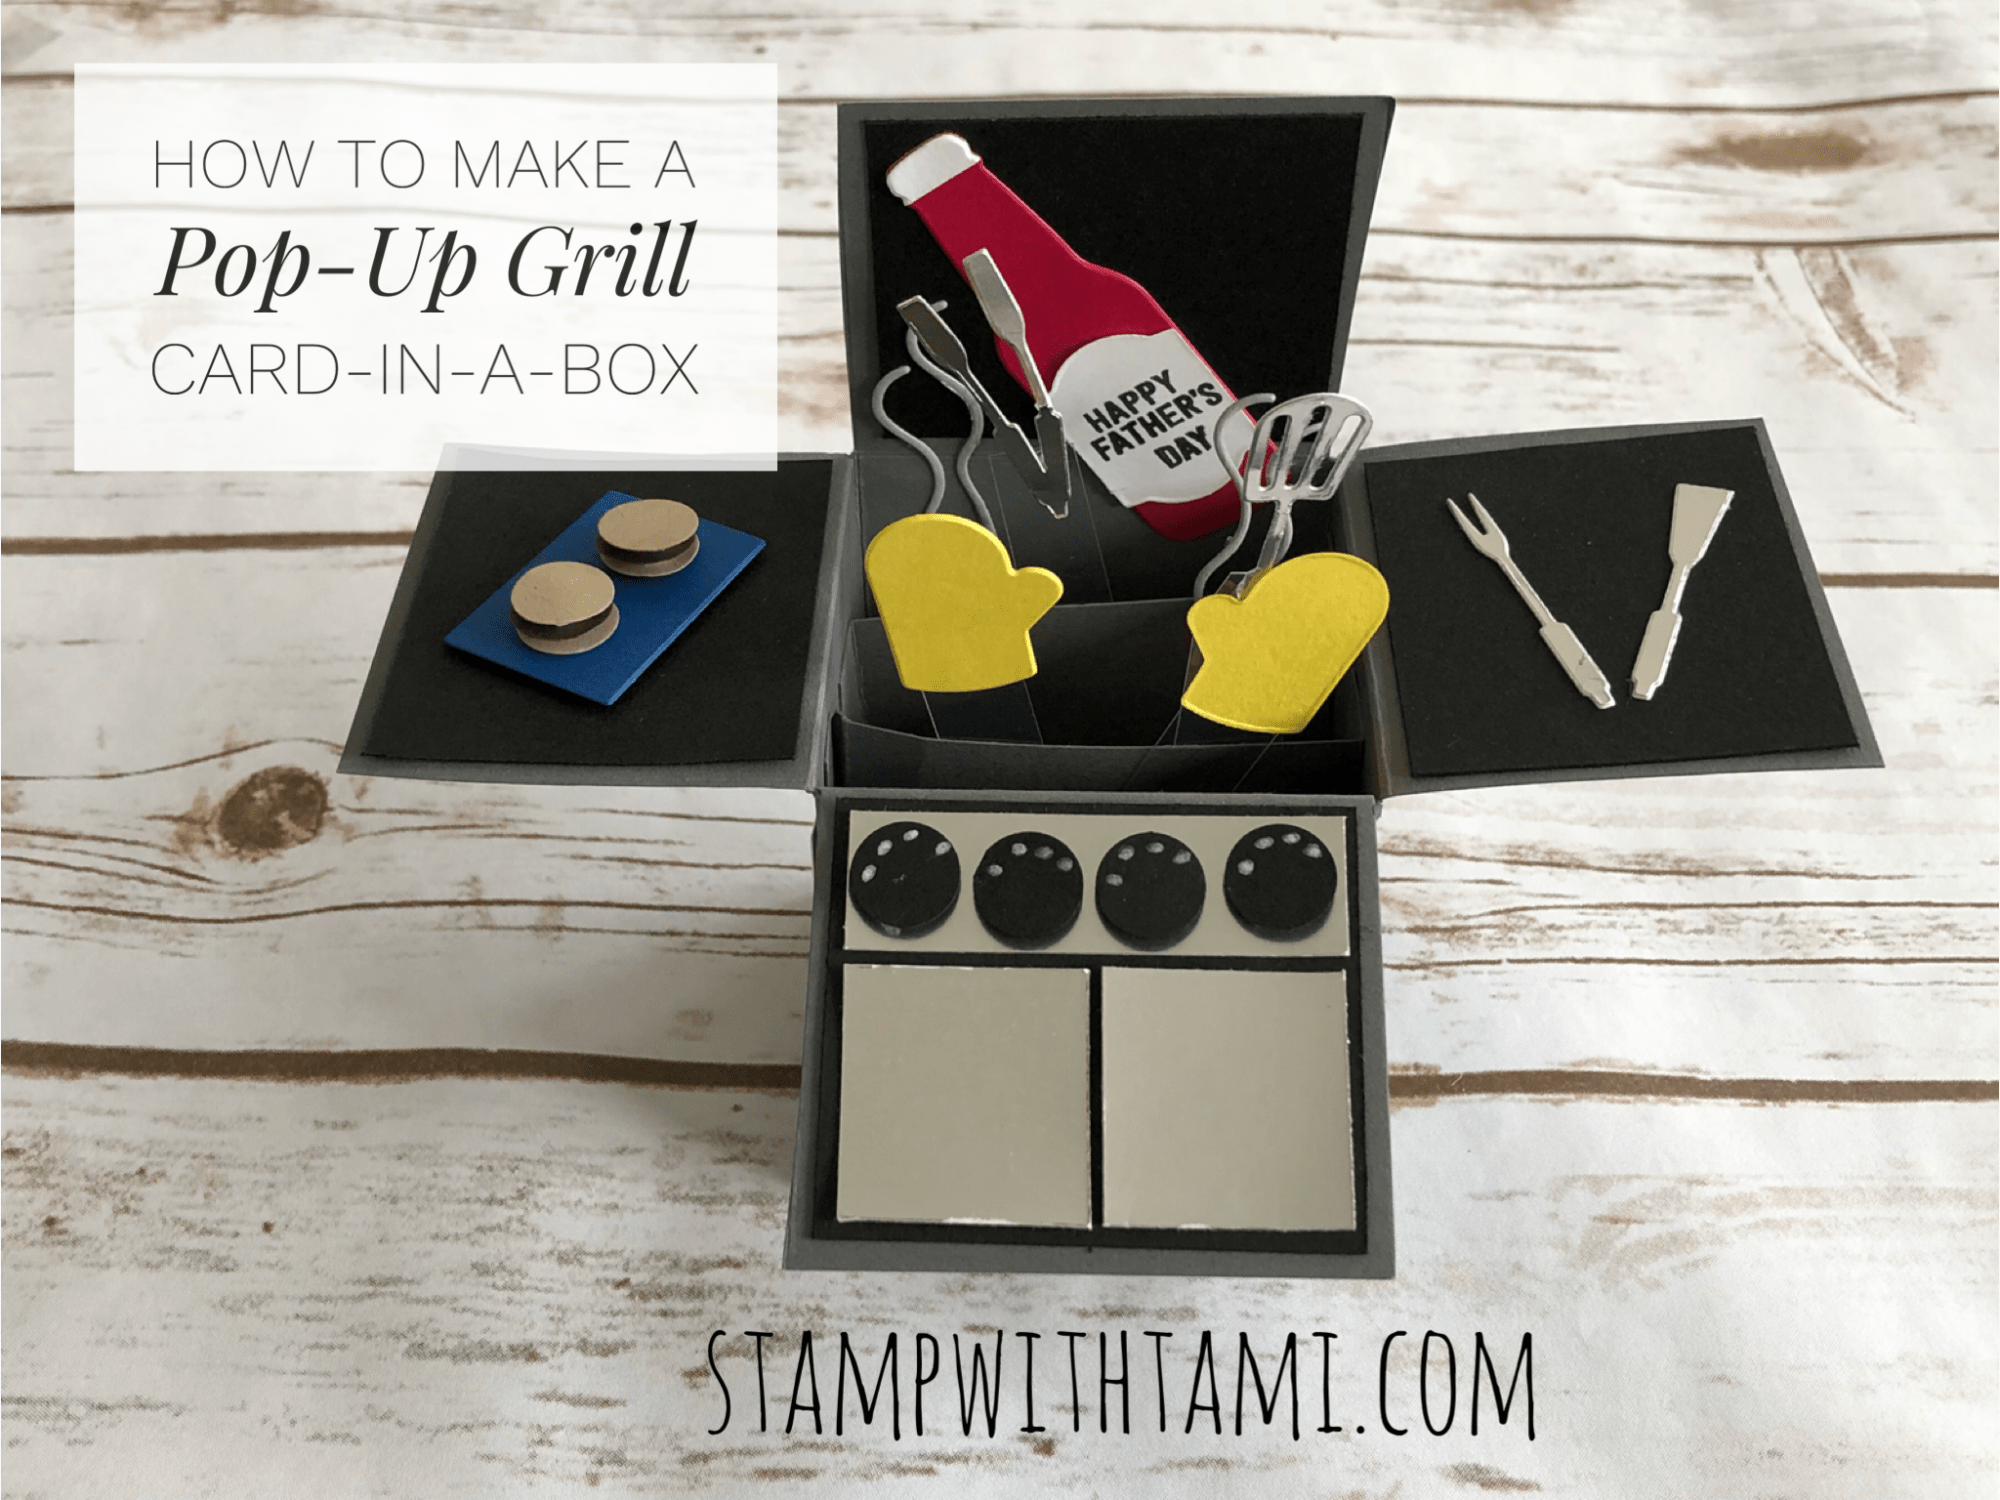 Blog Hop Giveaway How To Make A Grill Card A Box Pop Up Explosion Card Stampin Up Dem Diy Father S Day Cards Box Cards Tutorial Father S Day Card Template